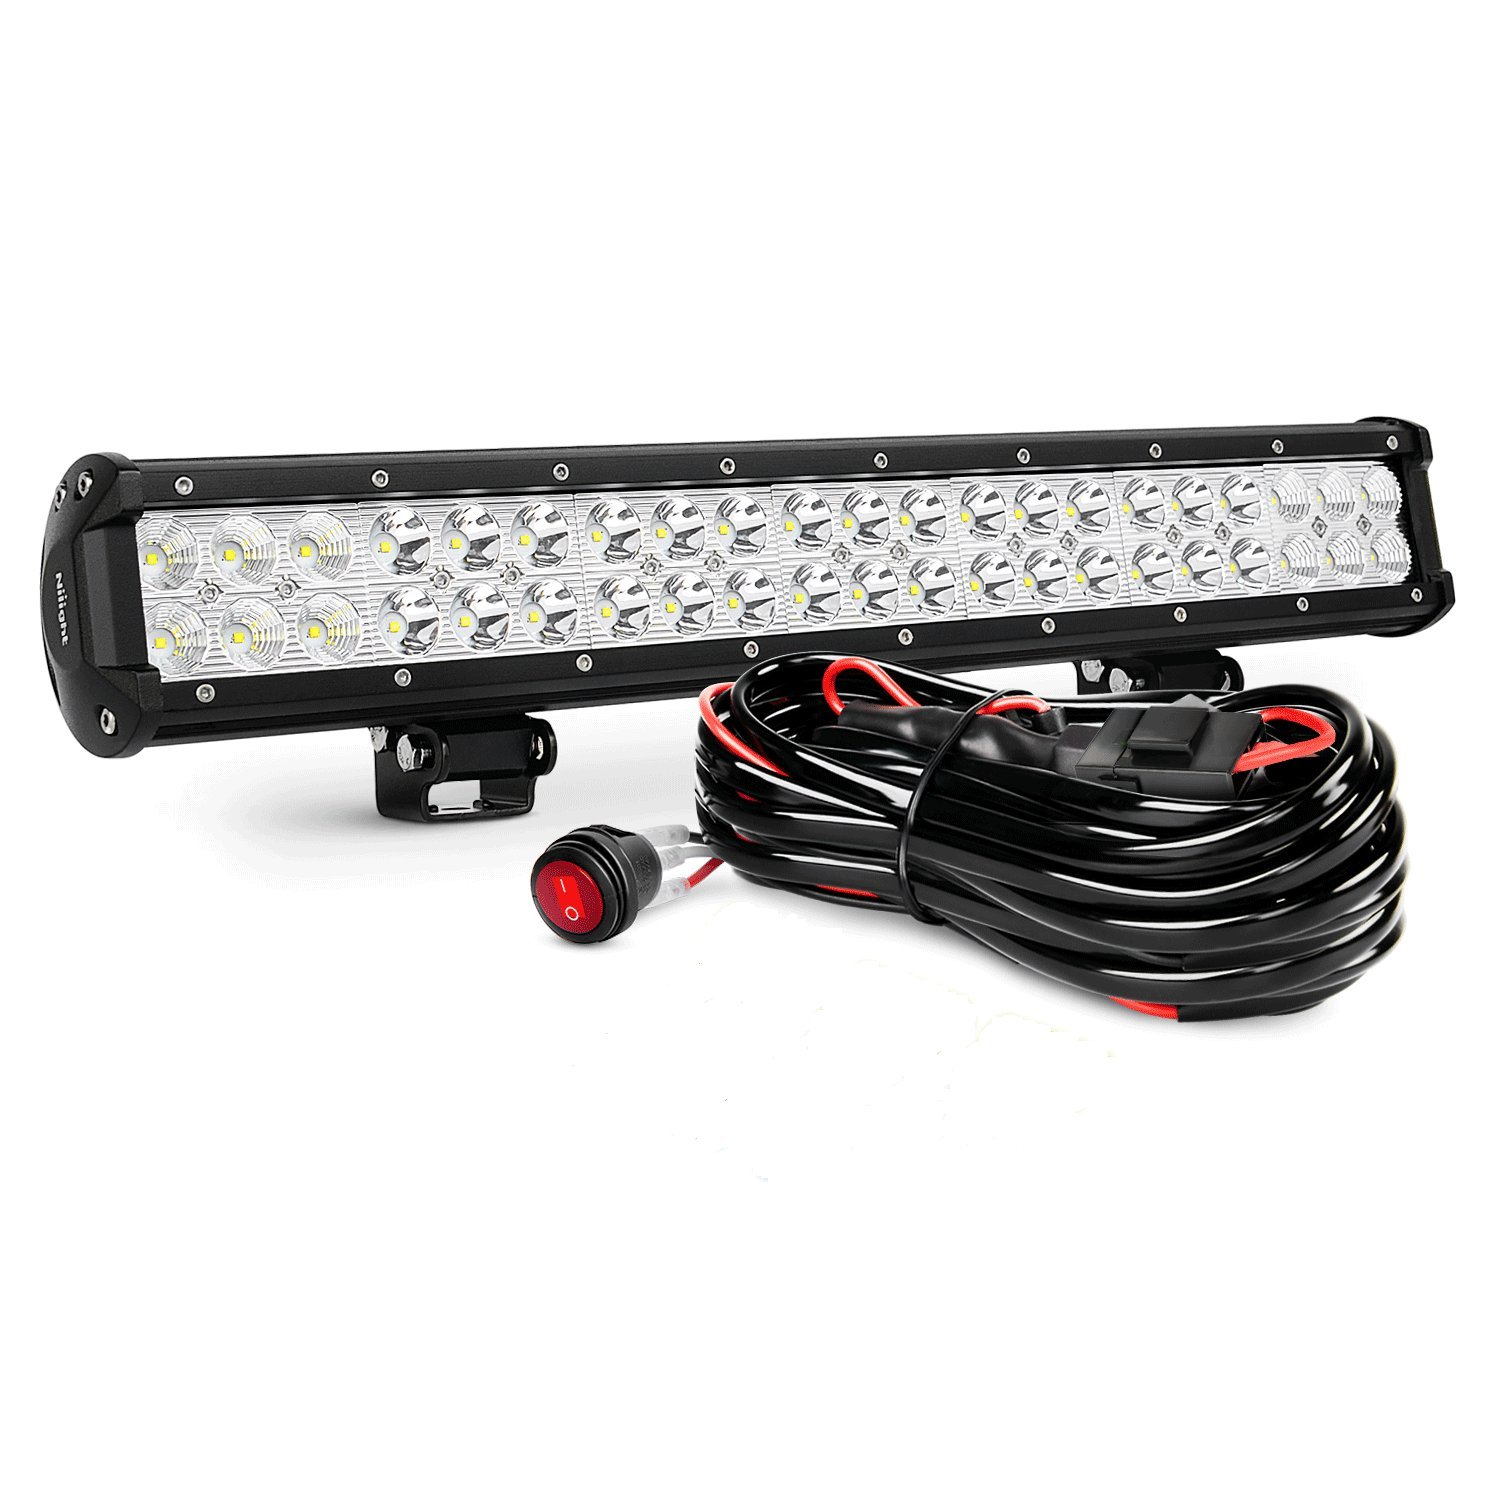 Best Rated In Automotive Light Bars Helpful Customer Reviews Snow Bear Trailer Wiring Diagram Tail Nilight Zh006 Bar 20inch 126w Spot Flood Combo Led Off Road Lights With 16awg Harness